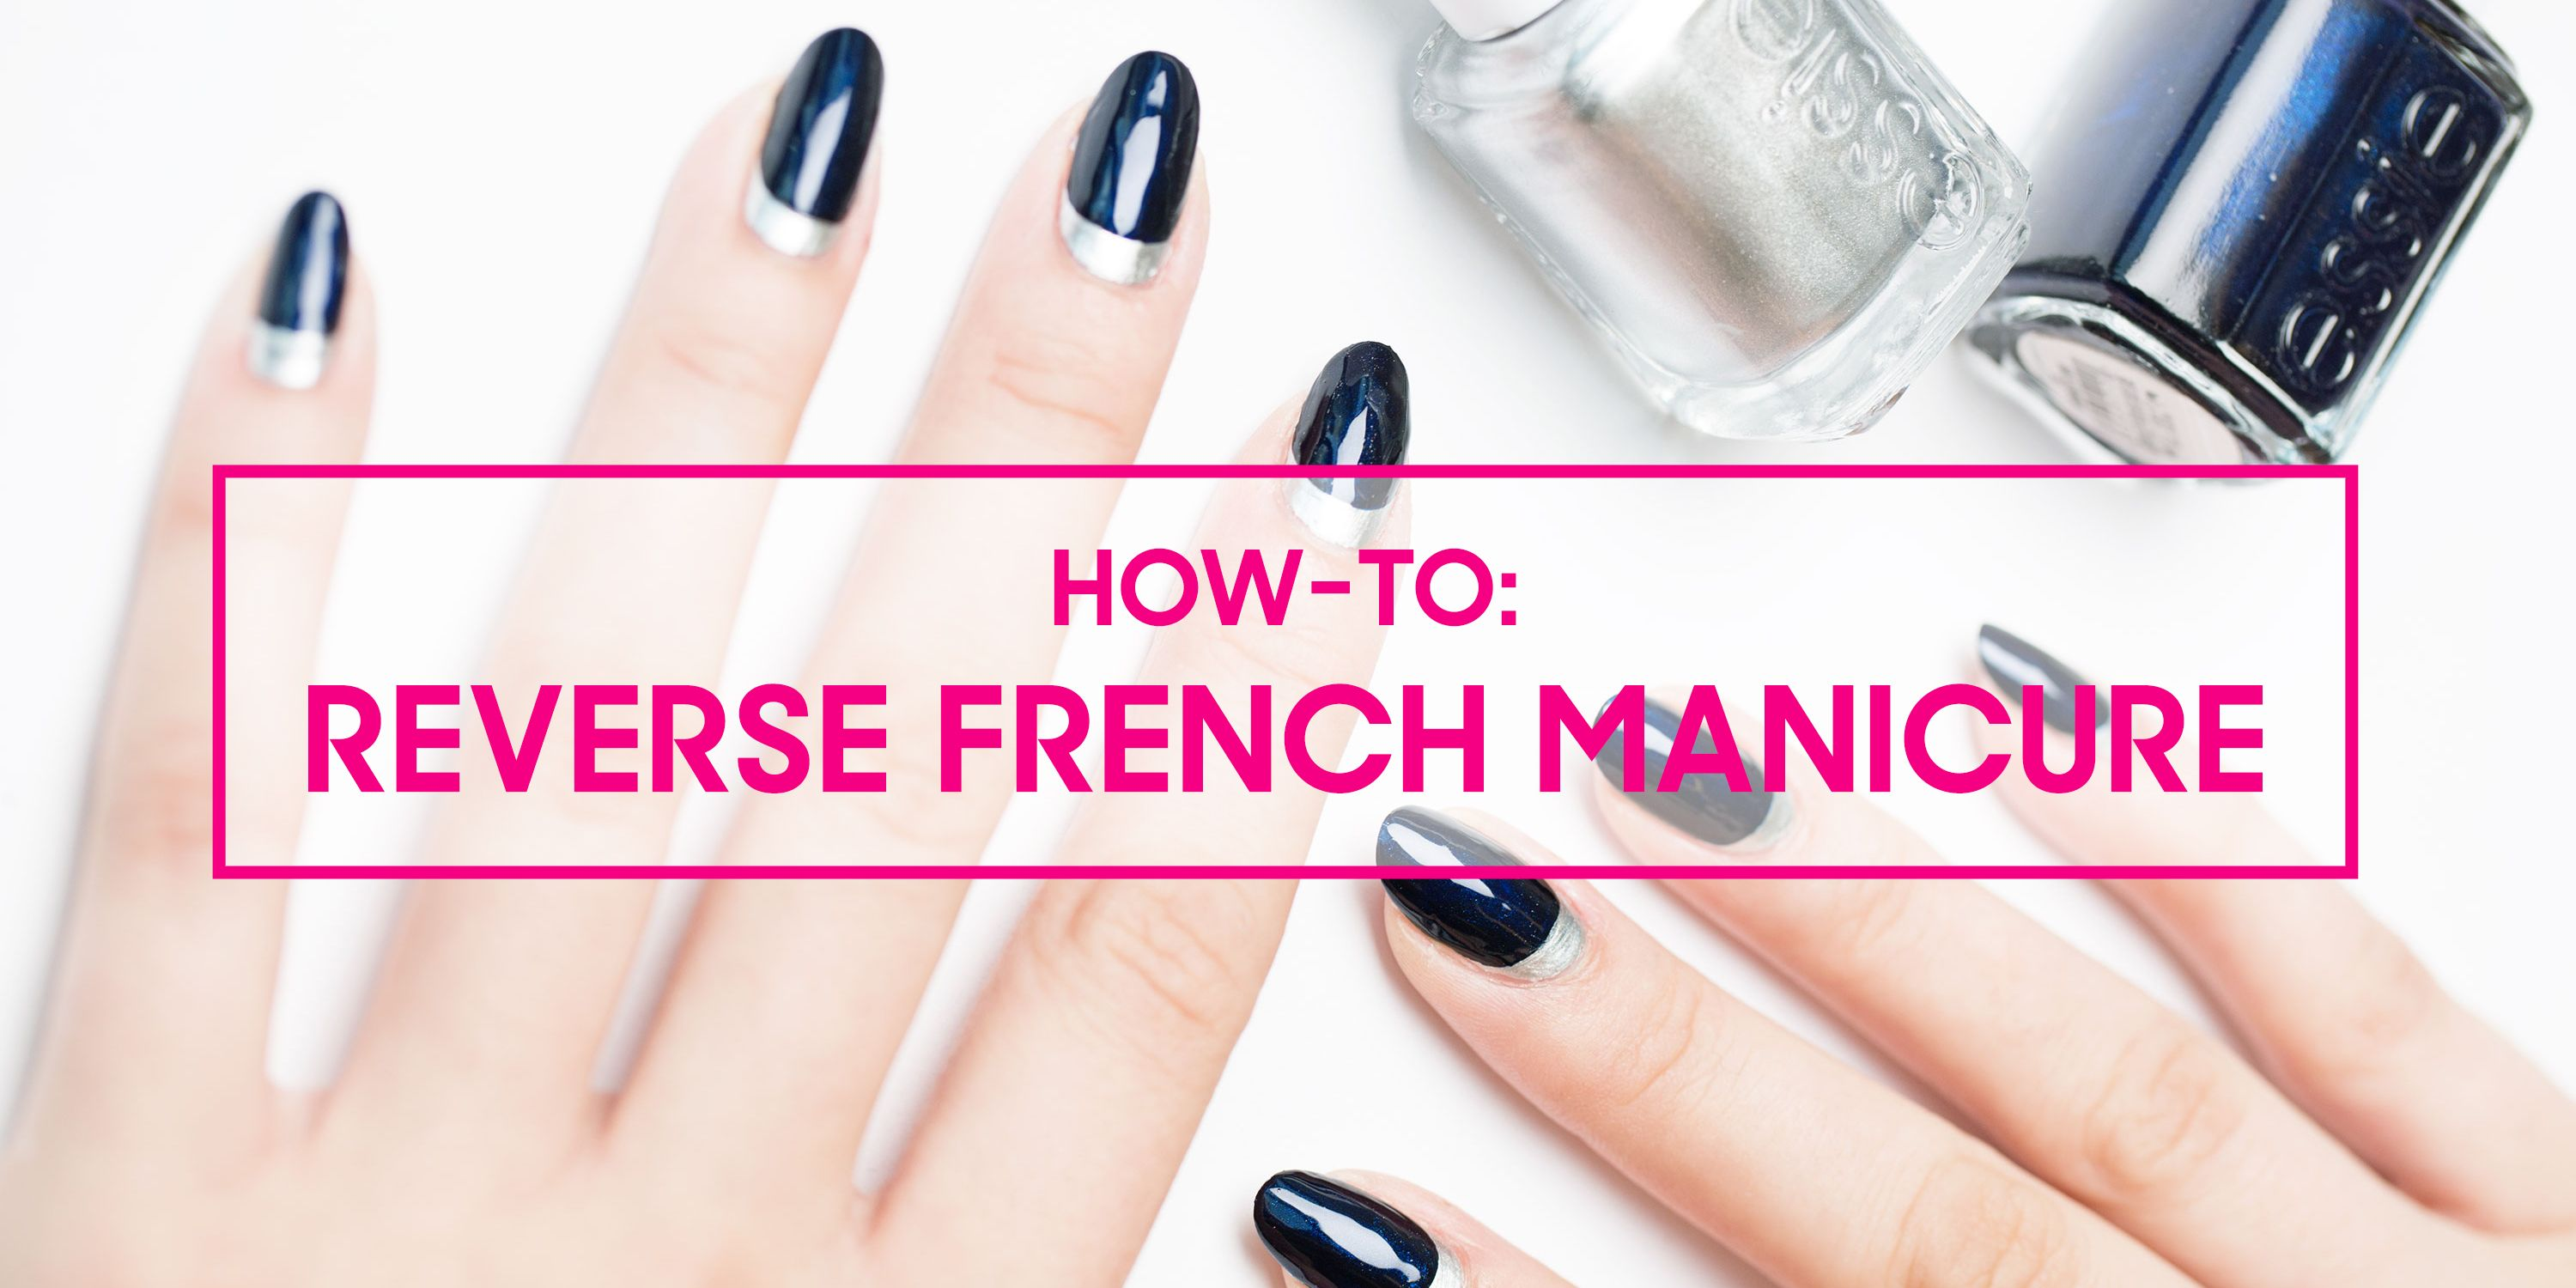 Reverse French Manicure Tutorial — How to Do a Half Moon Manicure